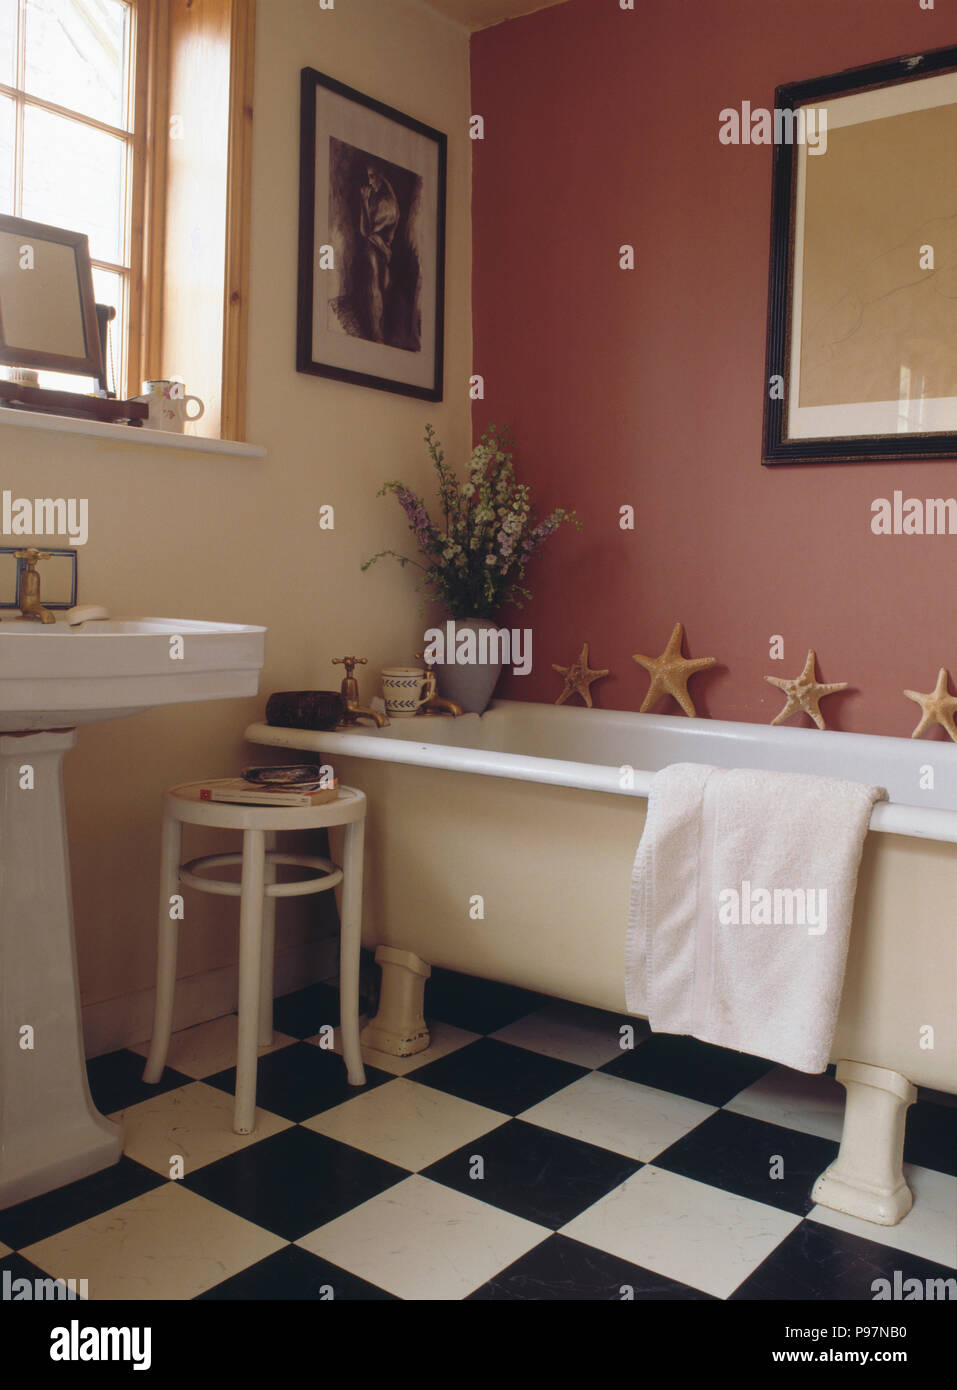 Black And White Chequerboard Vinyl Flooring In Pink Bathroom With Rolltop Bath Stock Photo Alamy